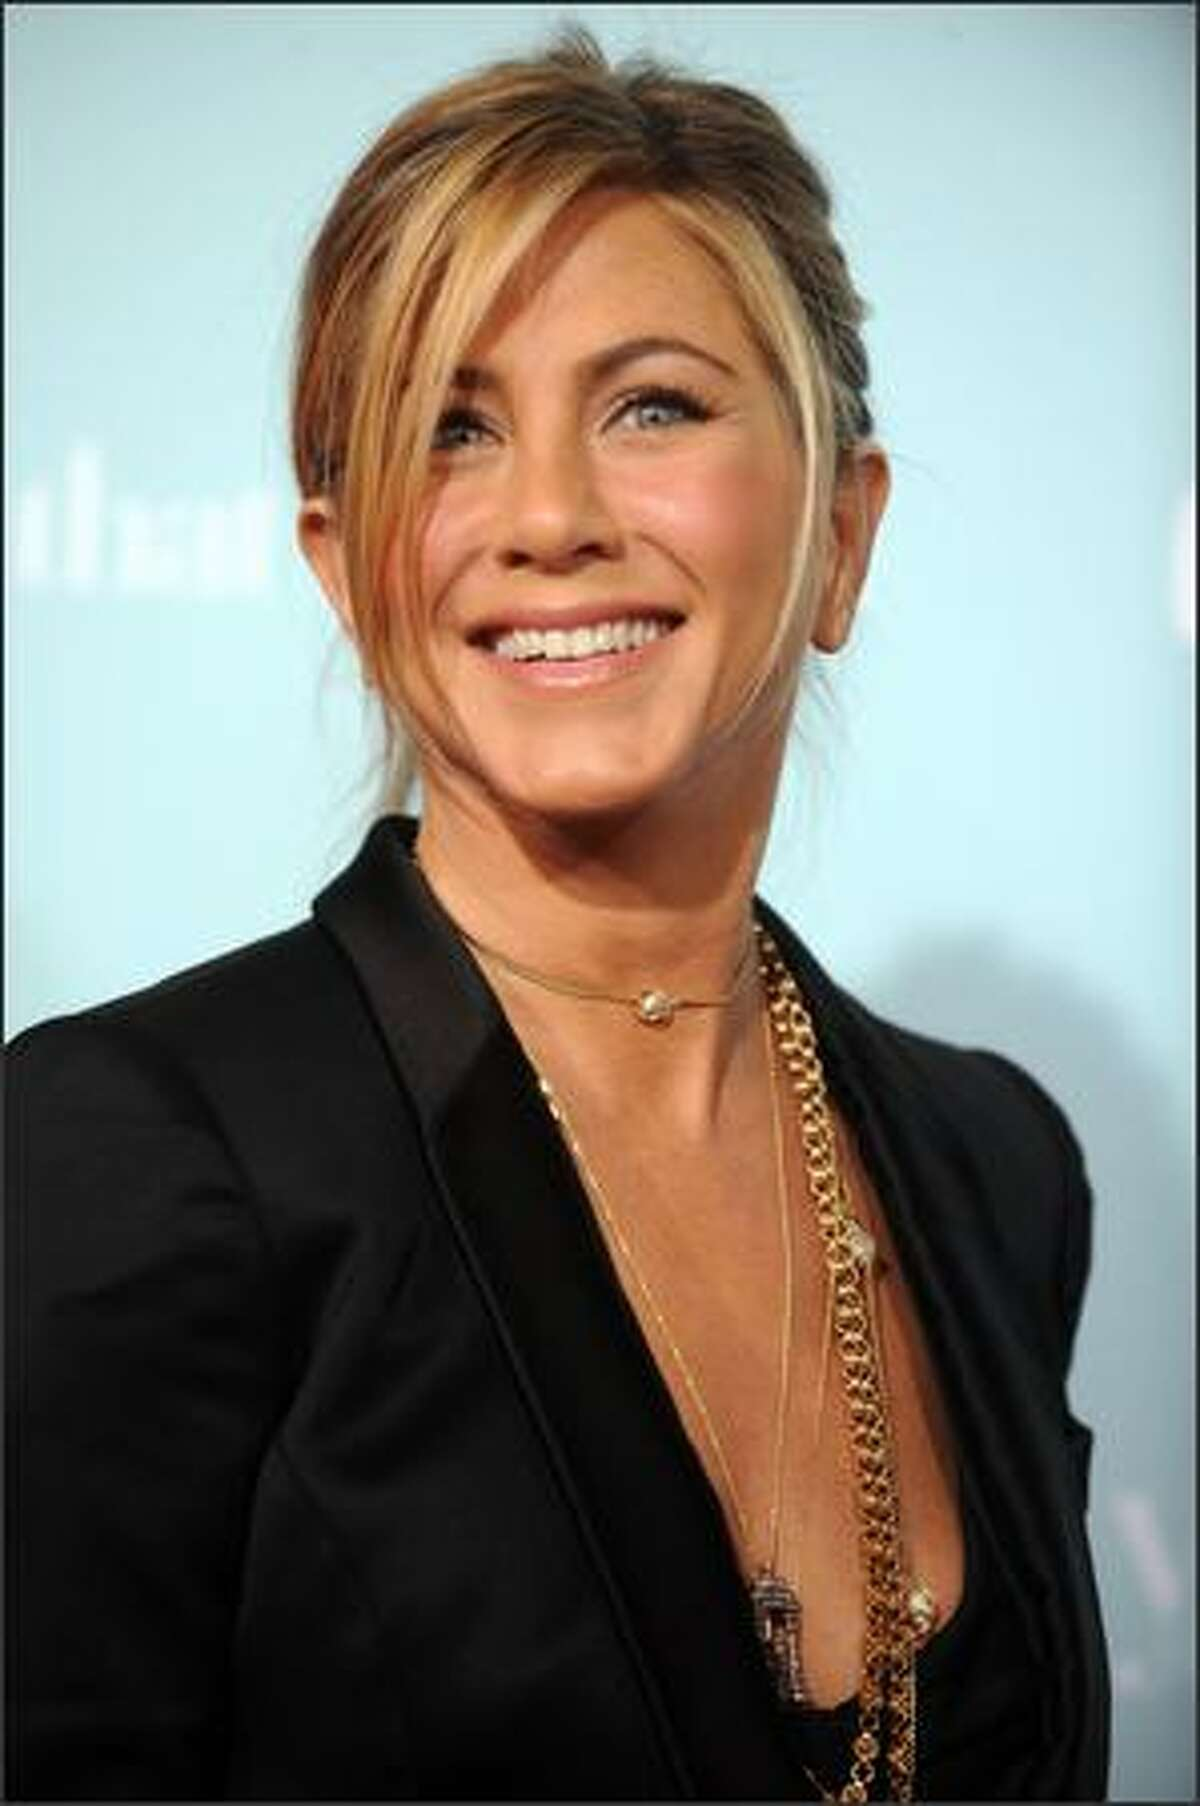 Actress Jennifer Aniston arrives for the World premiere of